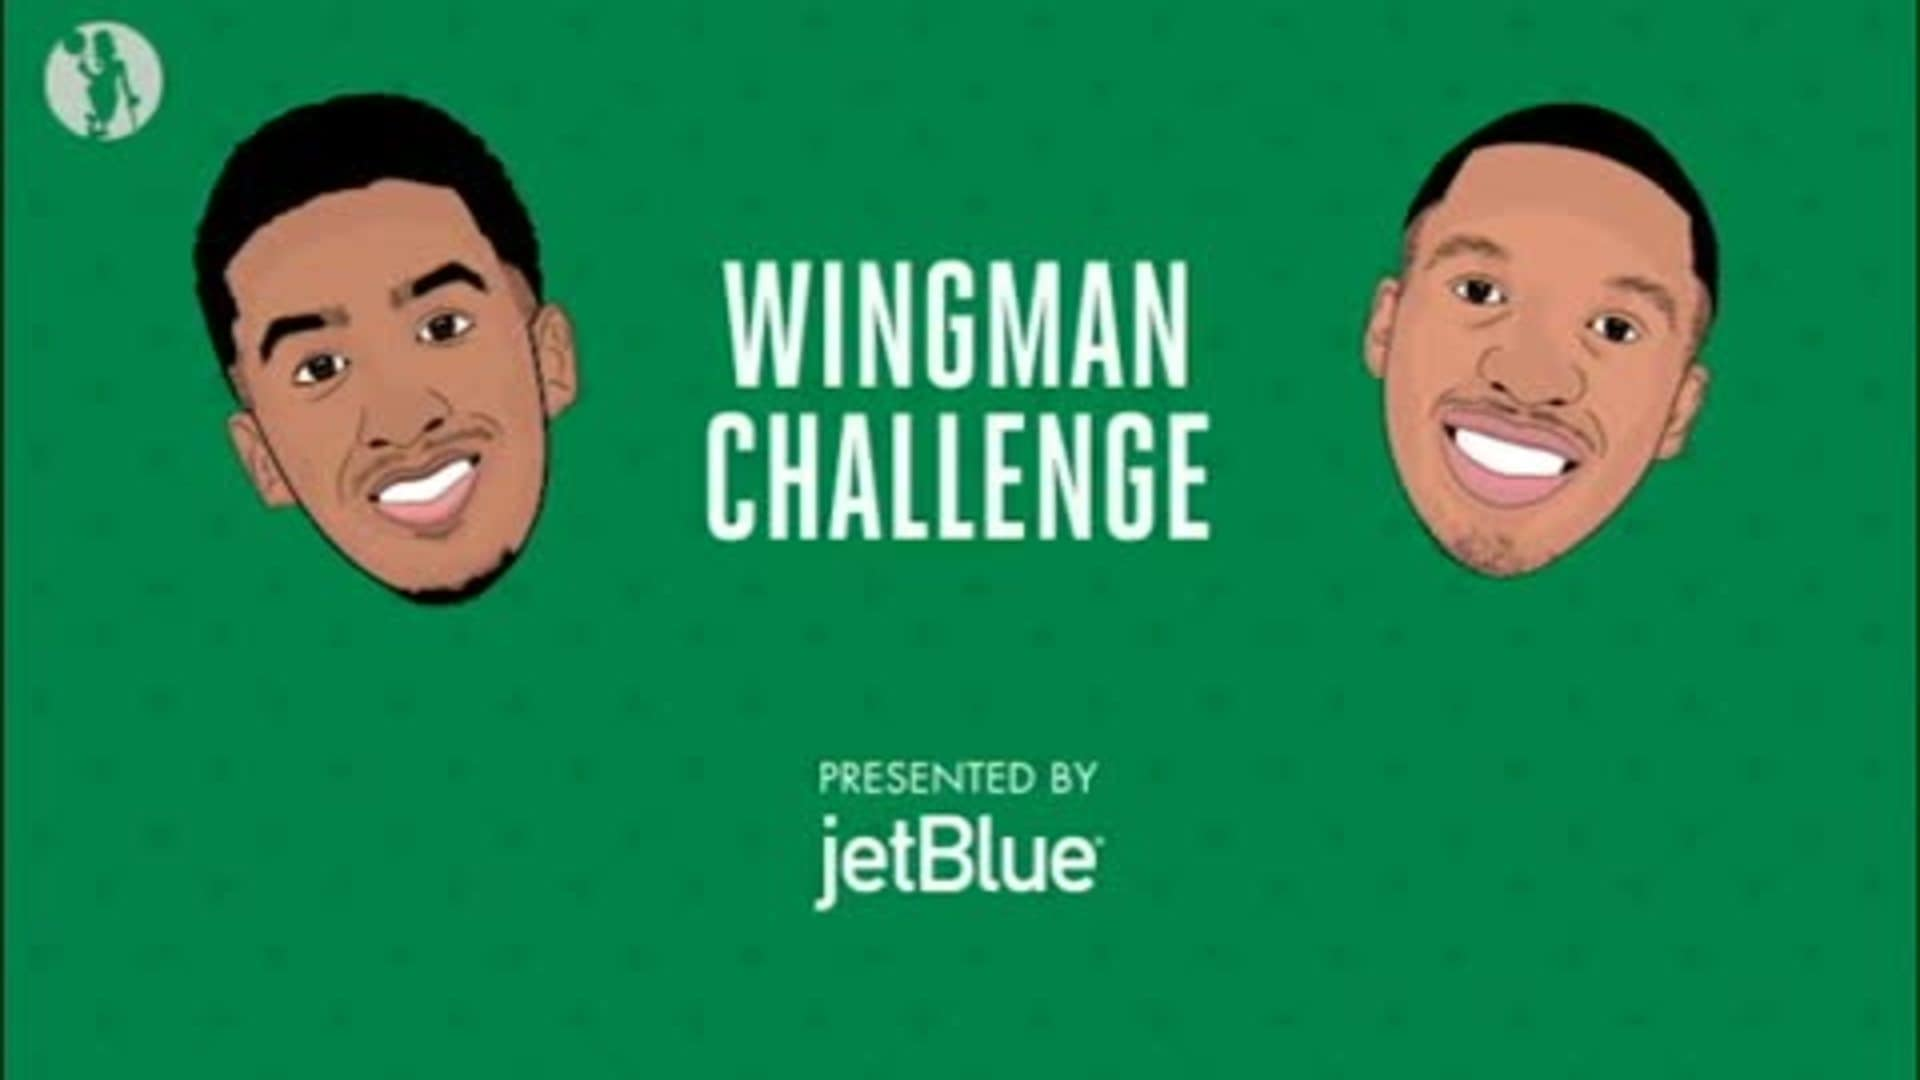 8/4 JetBlue Wingman Challenge